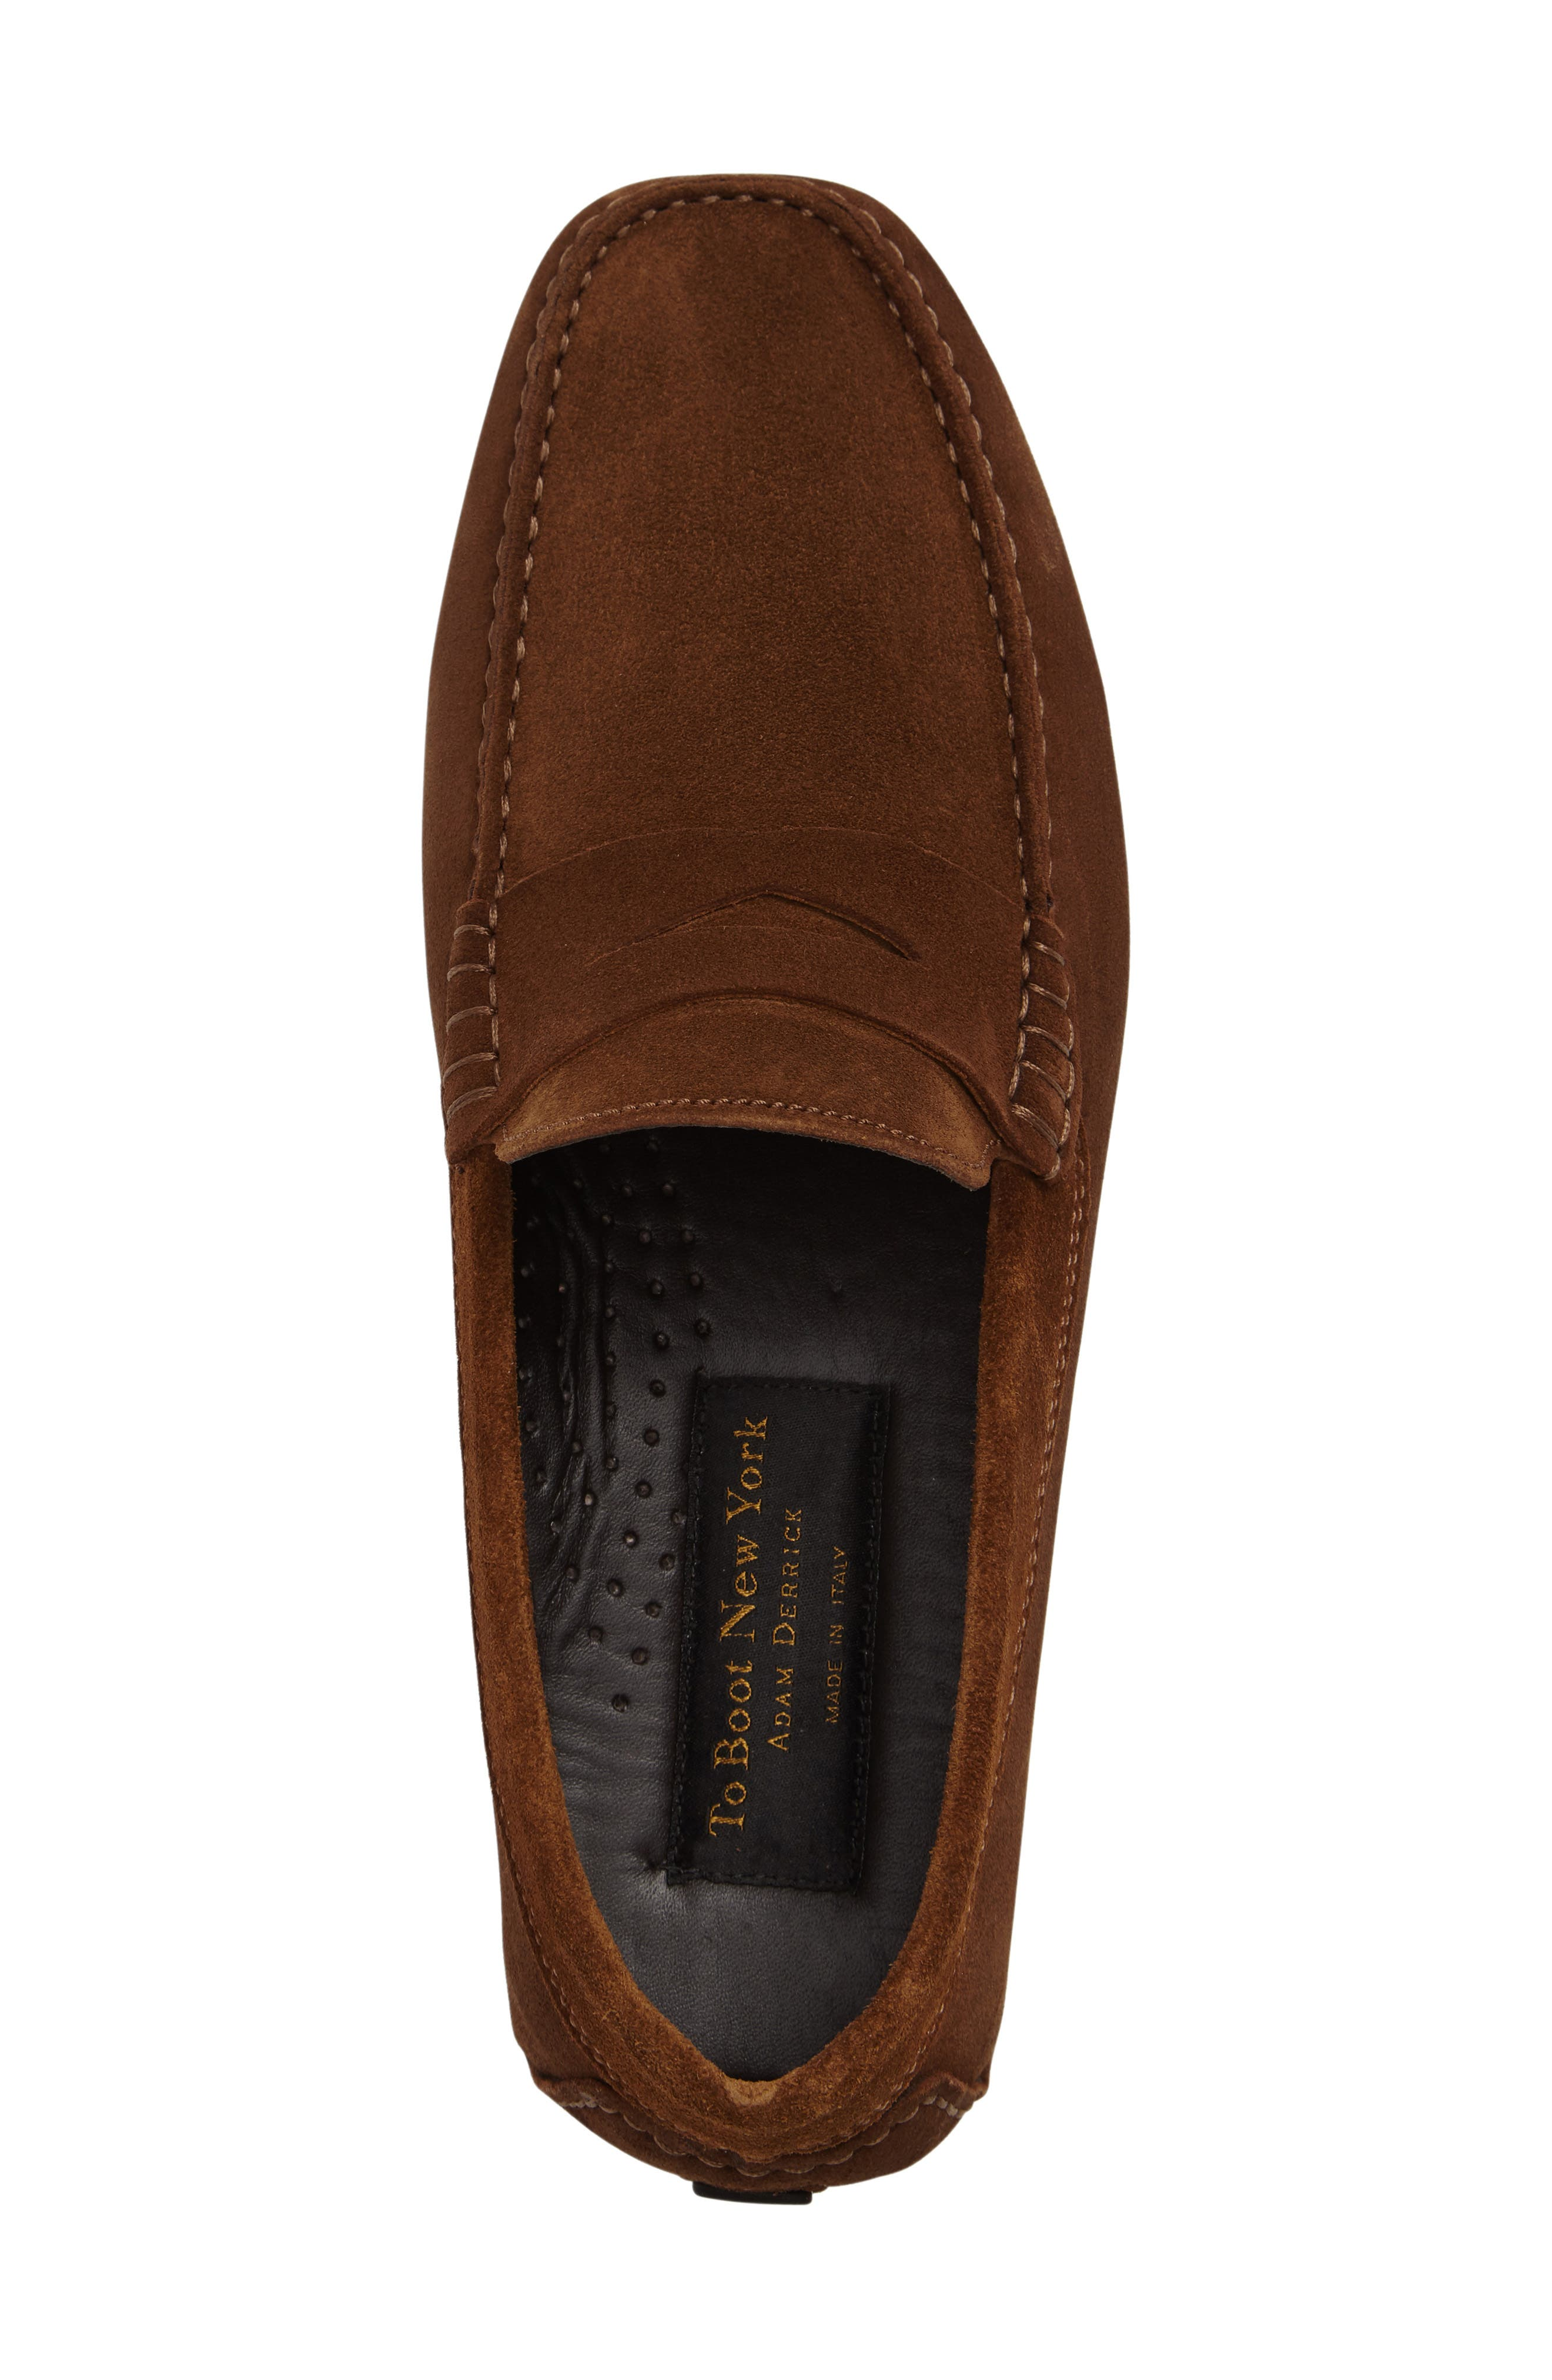 Mitchum Driving Shoe,                             Alternate thumbnail 3, color,                             BROWN/ BROWN SUEDE